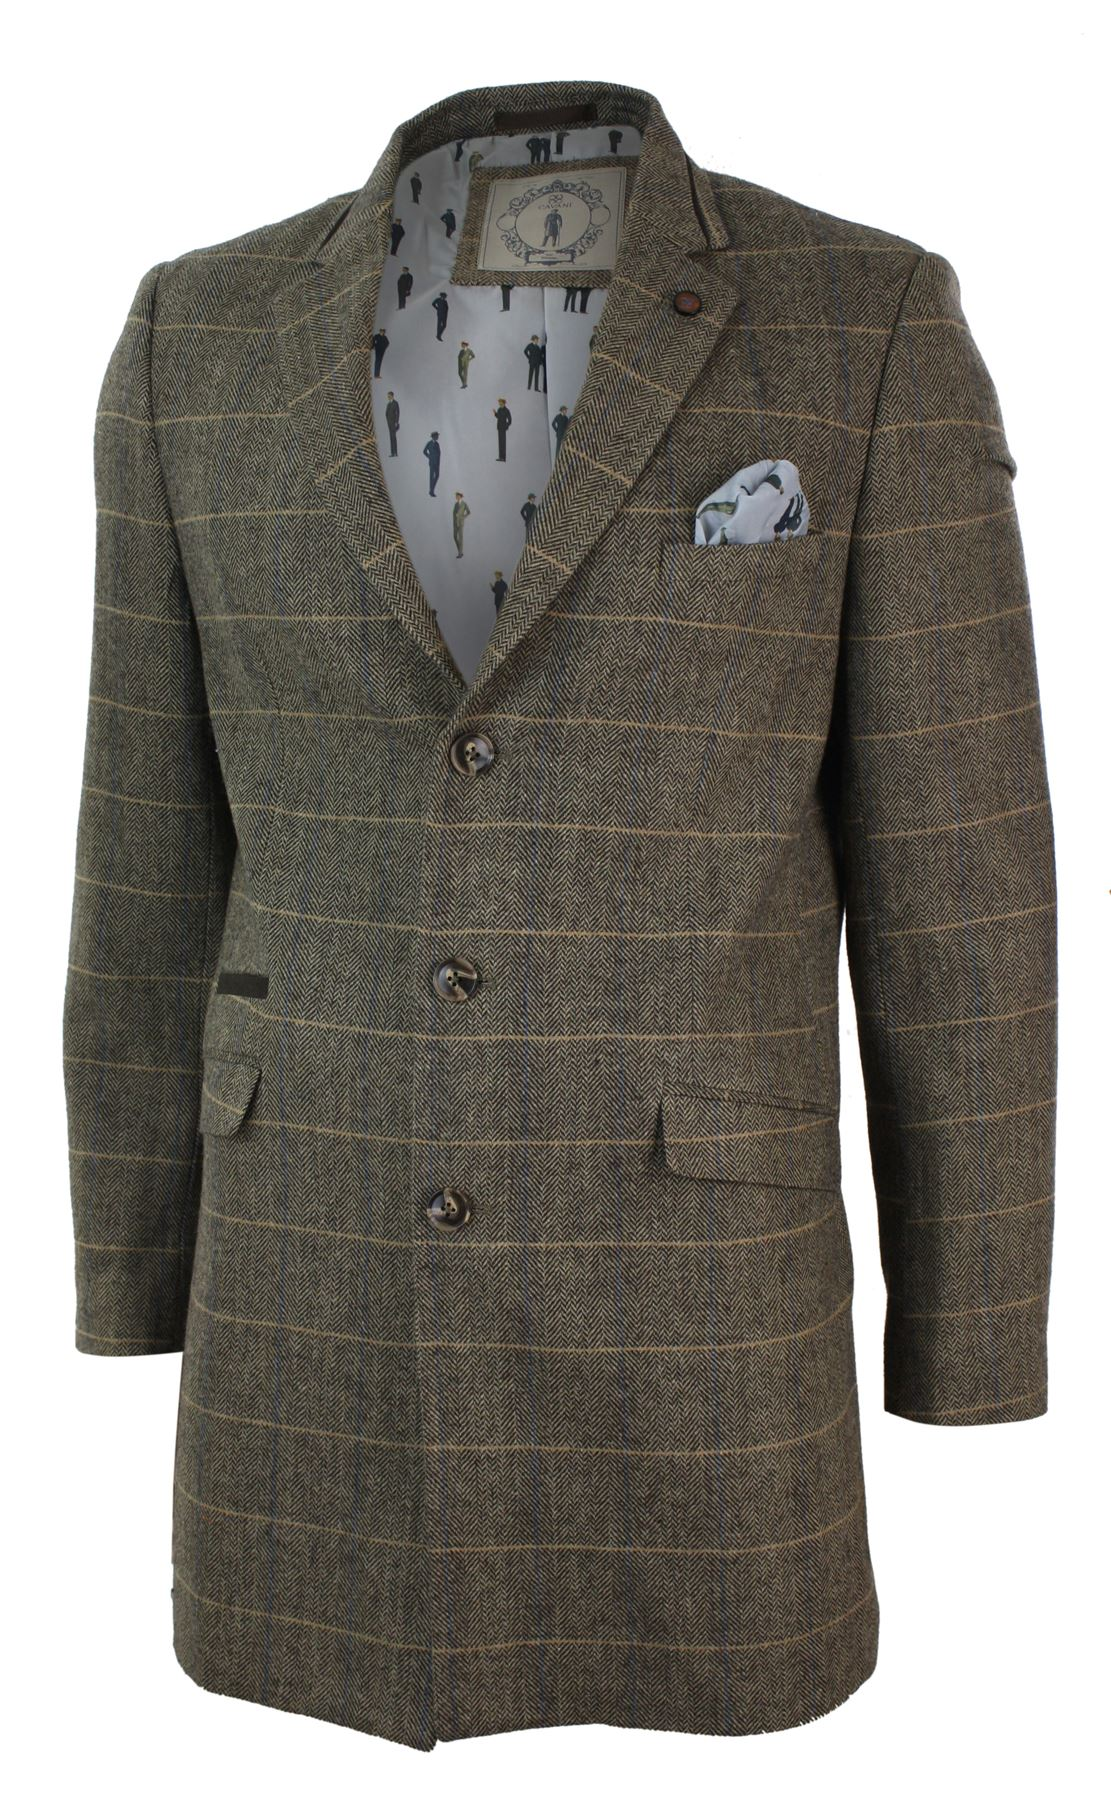 Check Out Our Incredible Men's Cashmere Overcoat Offerings Today MensItaly can handle all your mens wool overcoat needs, period. If you're eagerly shopping for mens camel top coats, you can count on us.